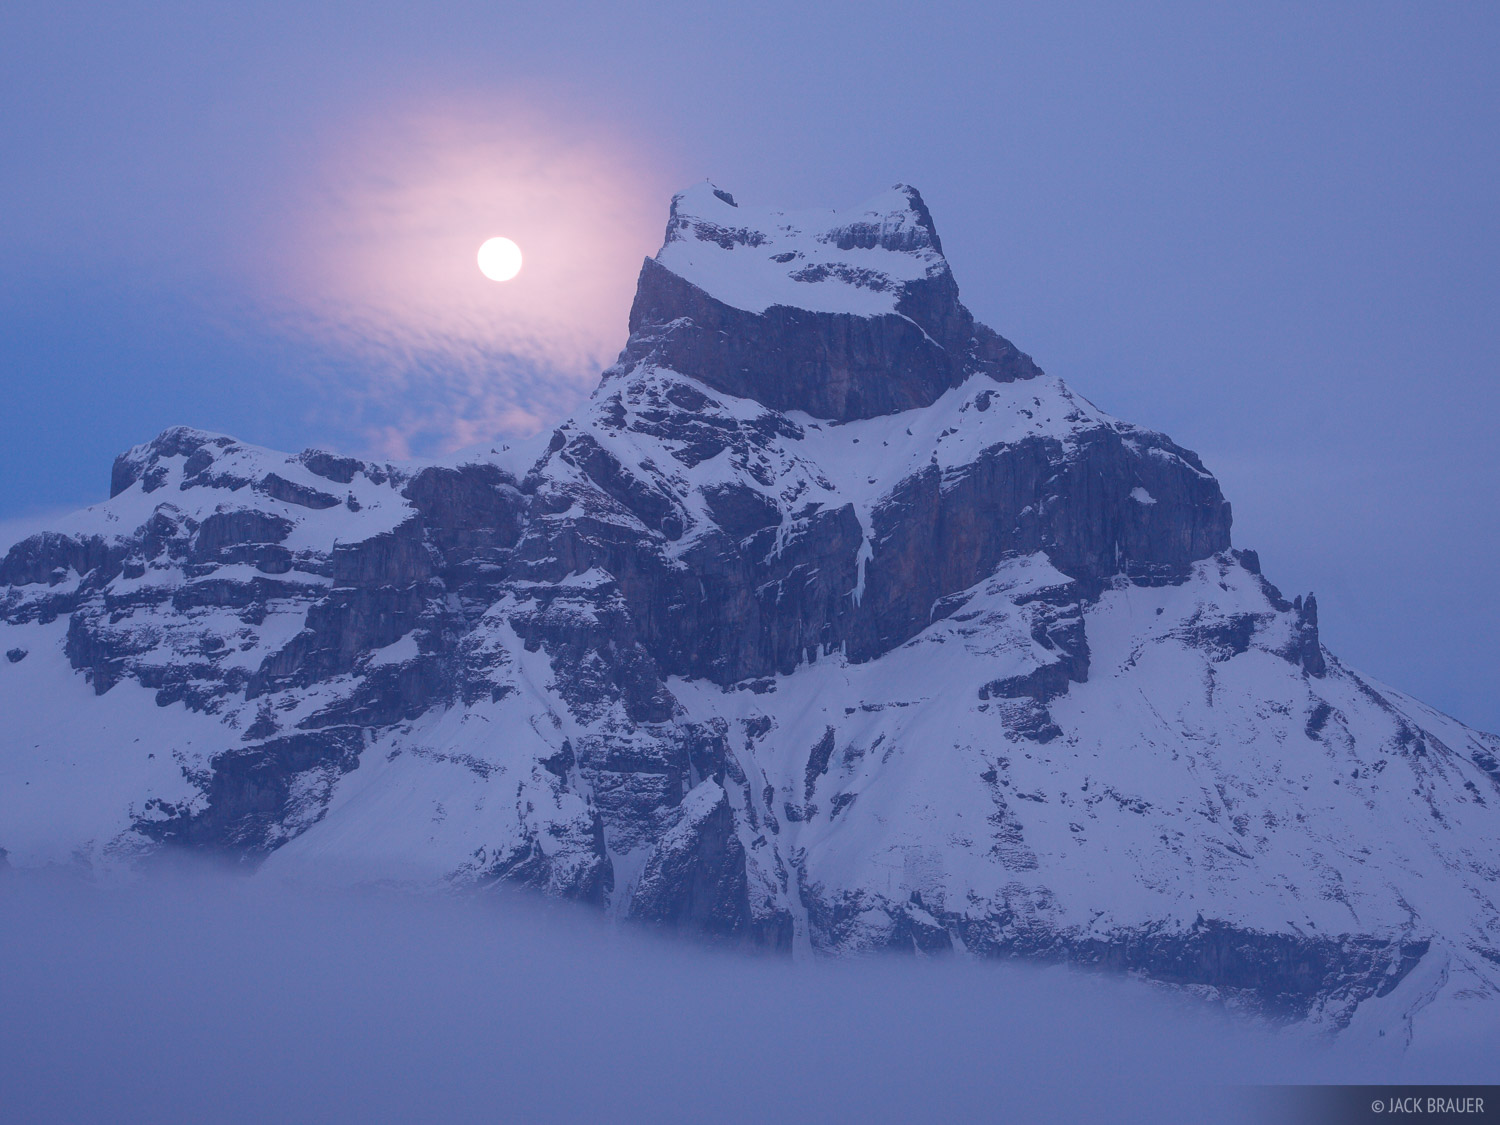 Hahnen, Engelberg, Switzerland, moon, Urner, photo